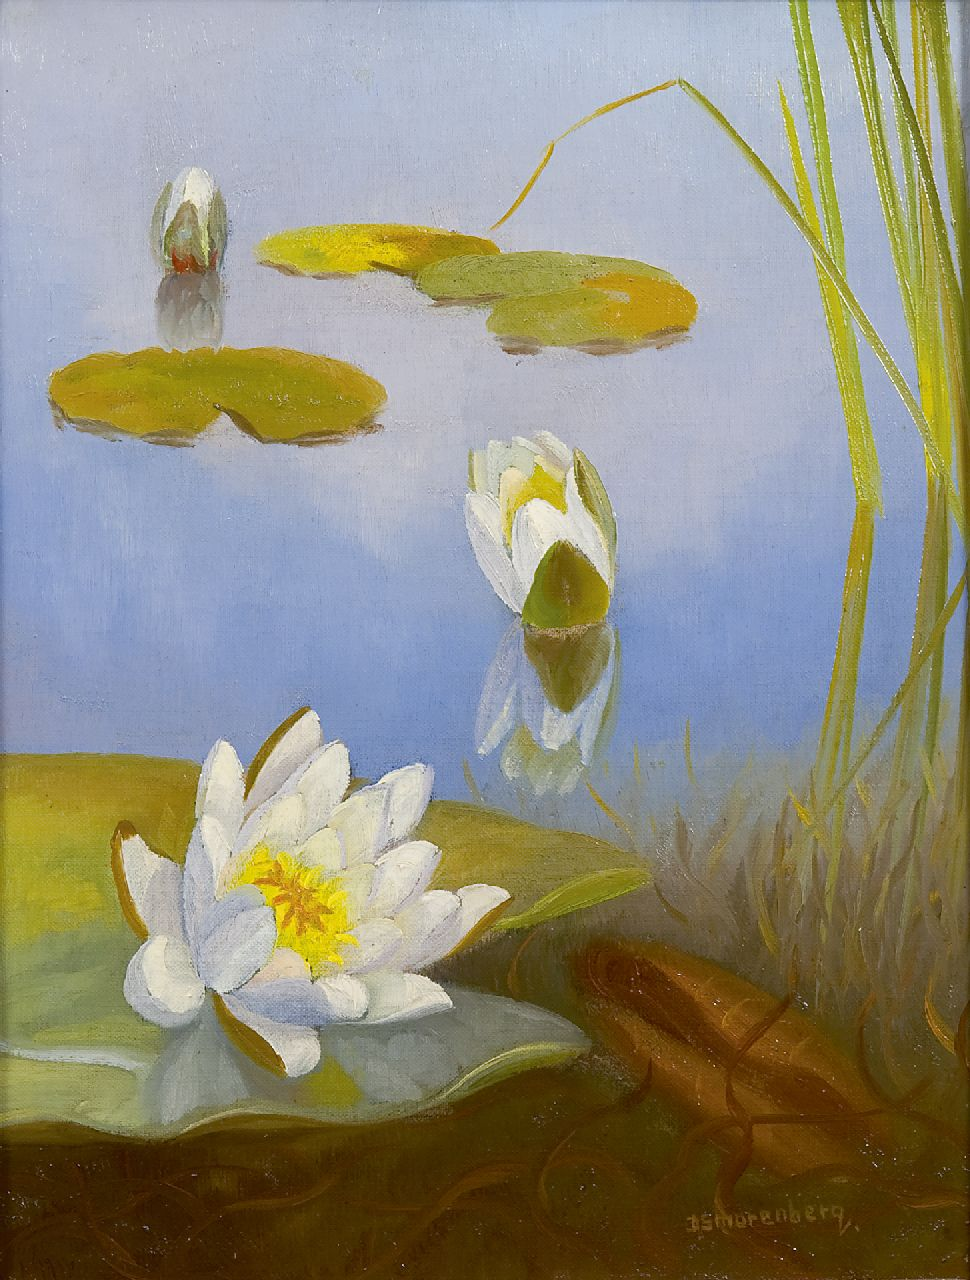 Smorenberg D.  | Dirk Smorenberg, Waterlilies, oil on canvas 32.2 x 25.2 cm, signed l.r.